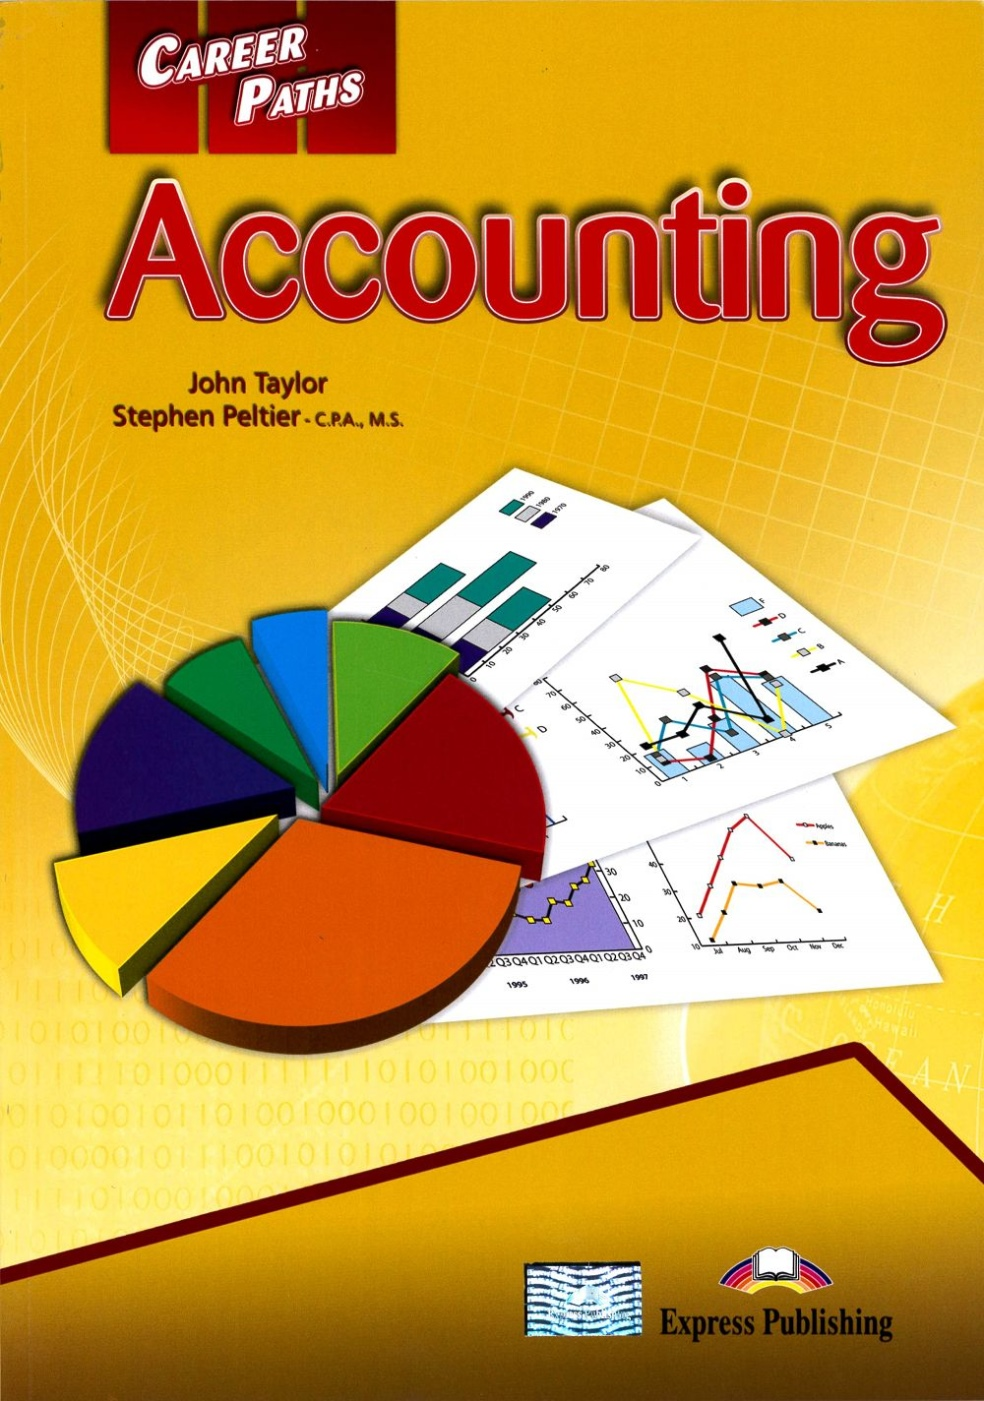 Career Paths:Accounting Student's Book with Cross-Platform Application